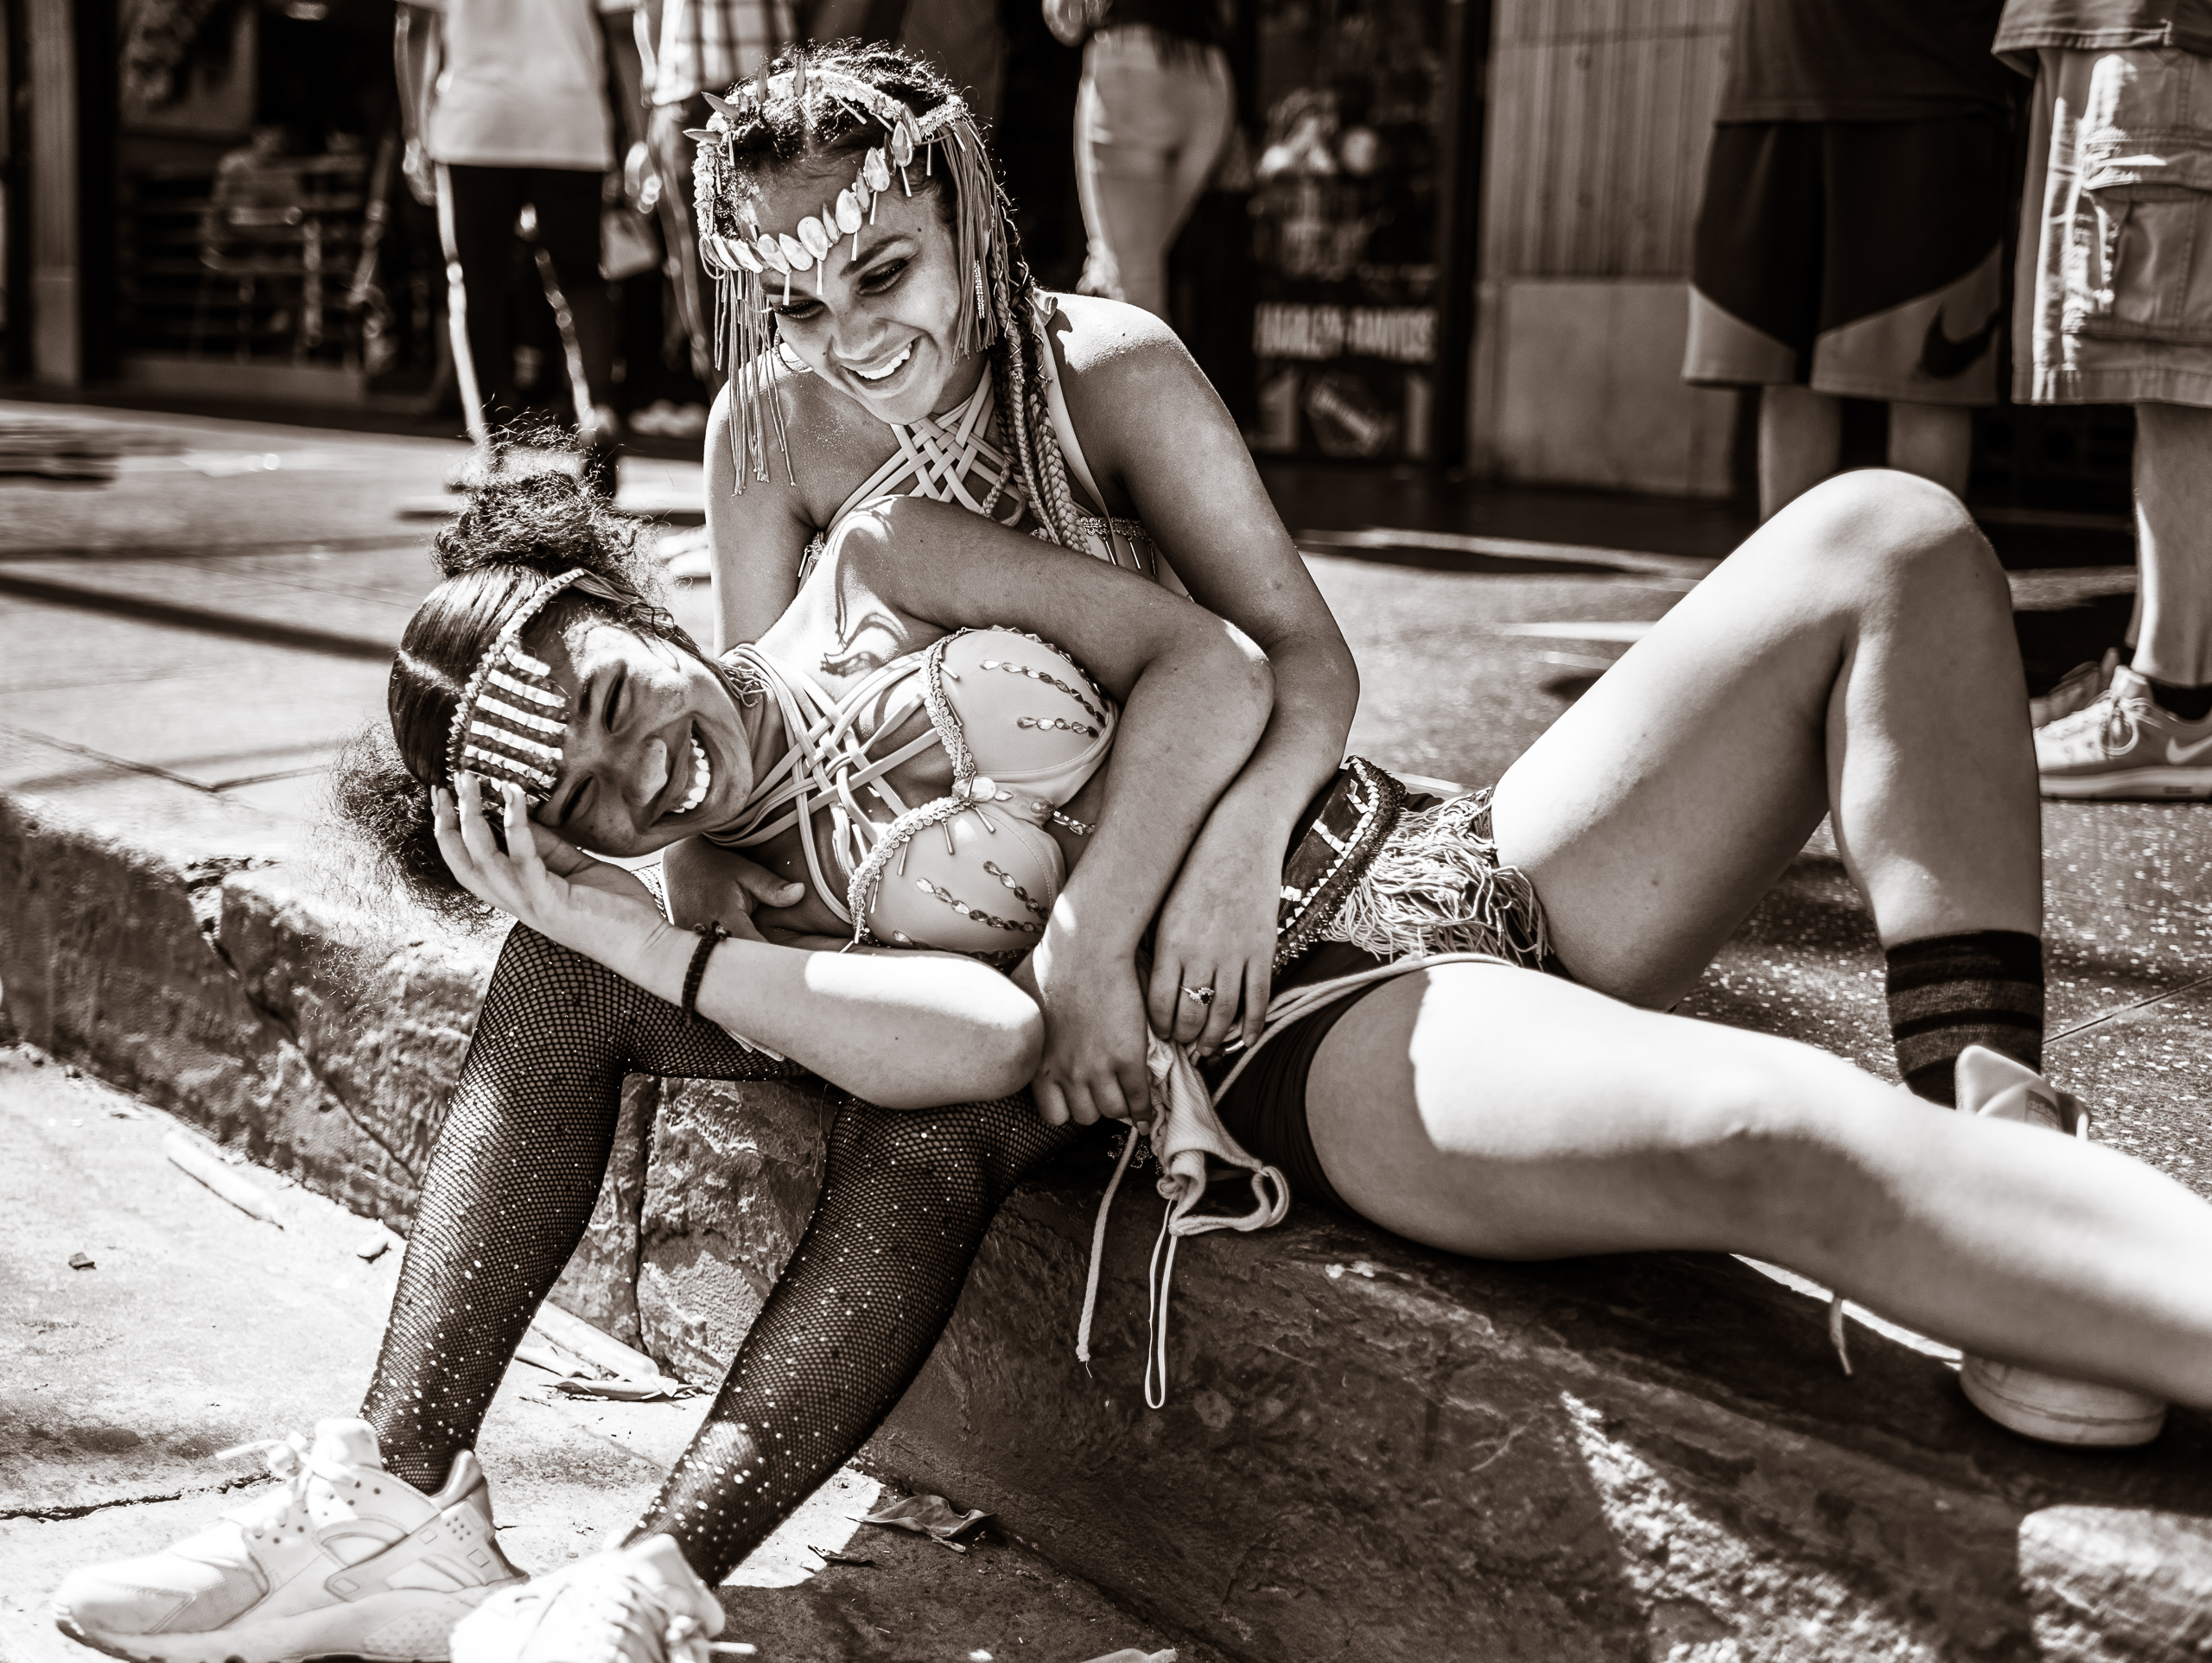 two dancers from the Hollywood Carnival Parade sit on the curb on Hollywood Blvd. One leans over and rests her head in the other's lap. They share tired, but real smiles.